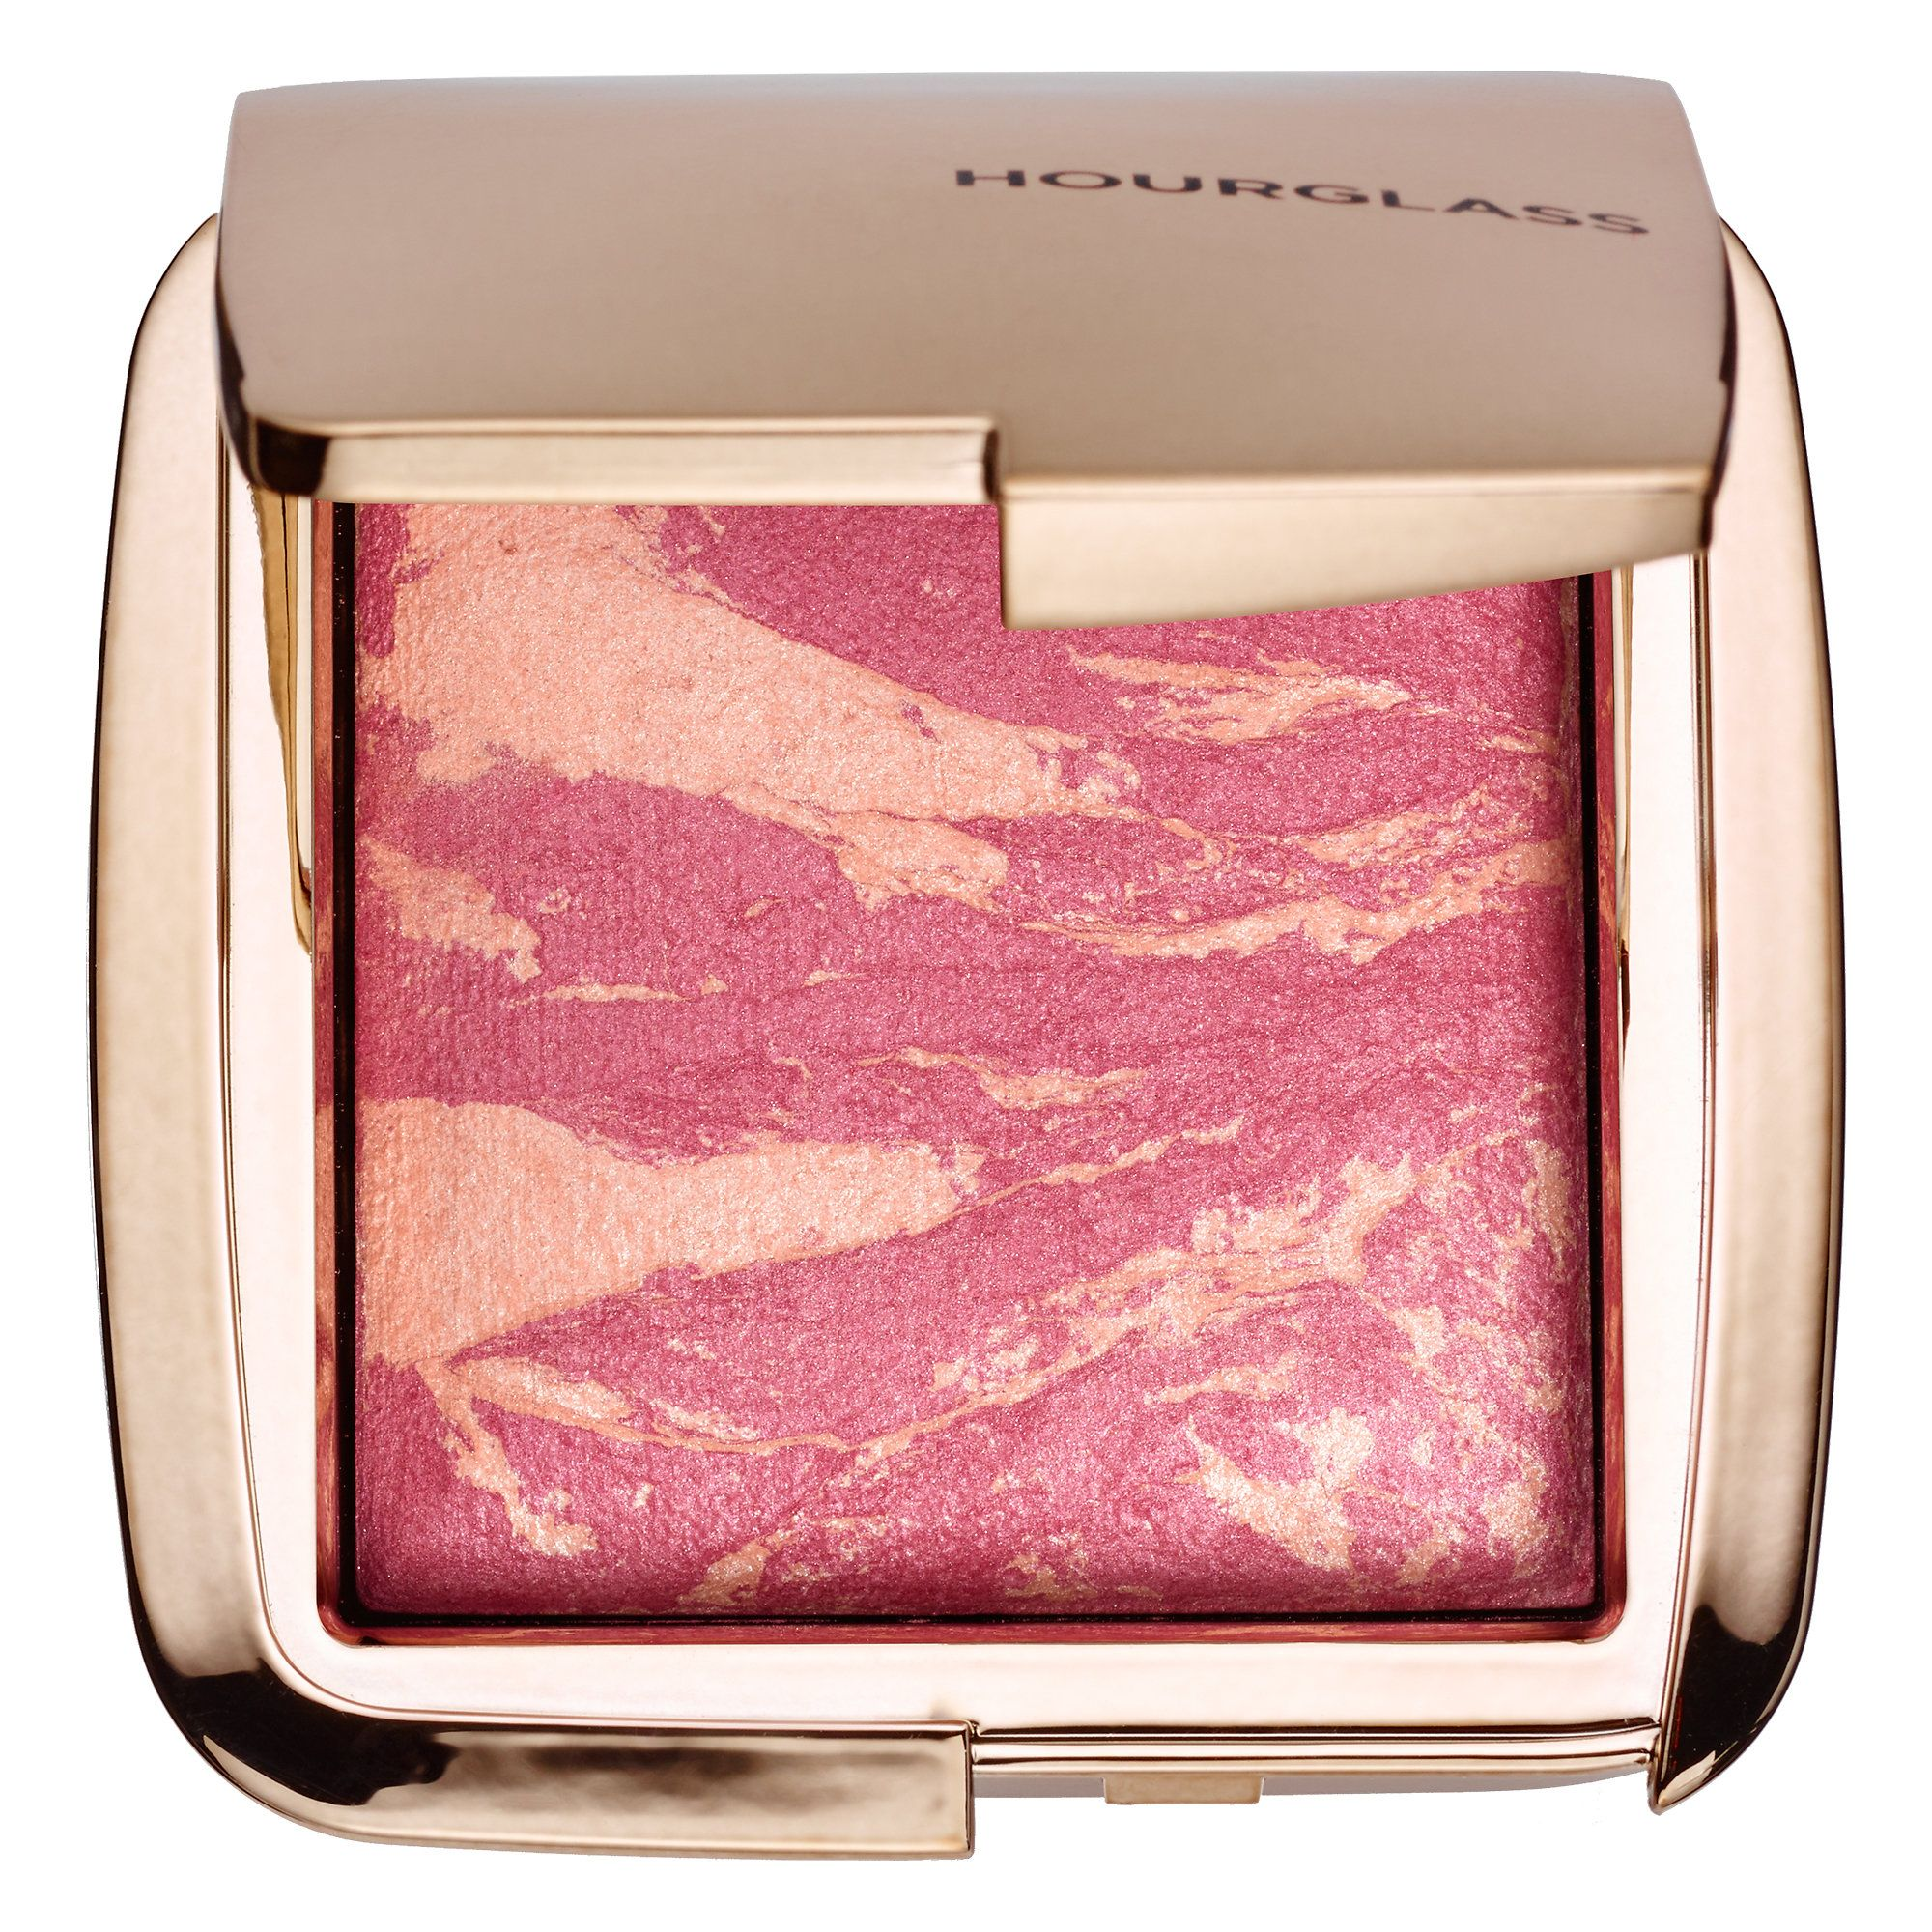 16e2cc521f7cdd Best Blushes Of All Time - 15 New Blushes To Try